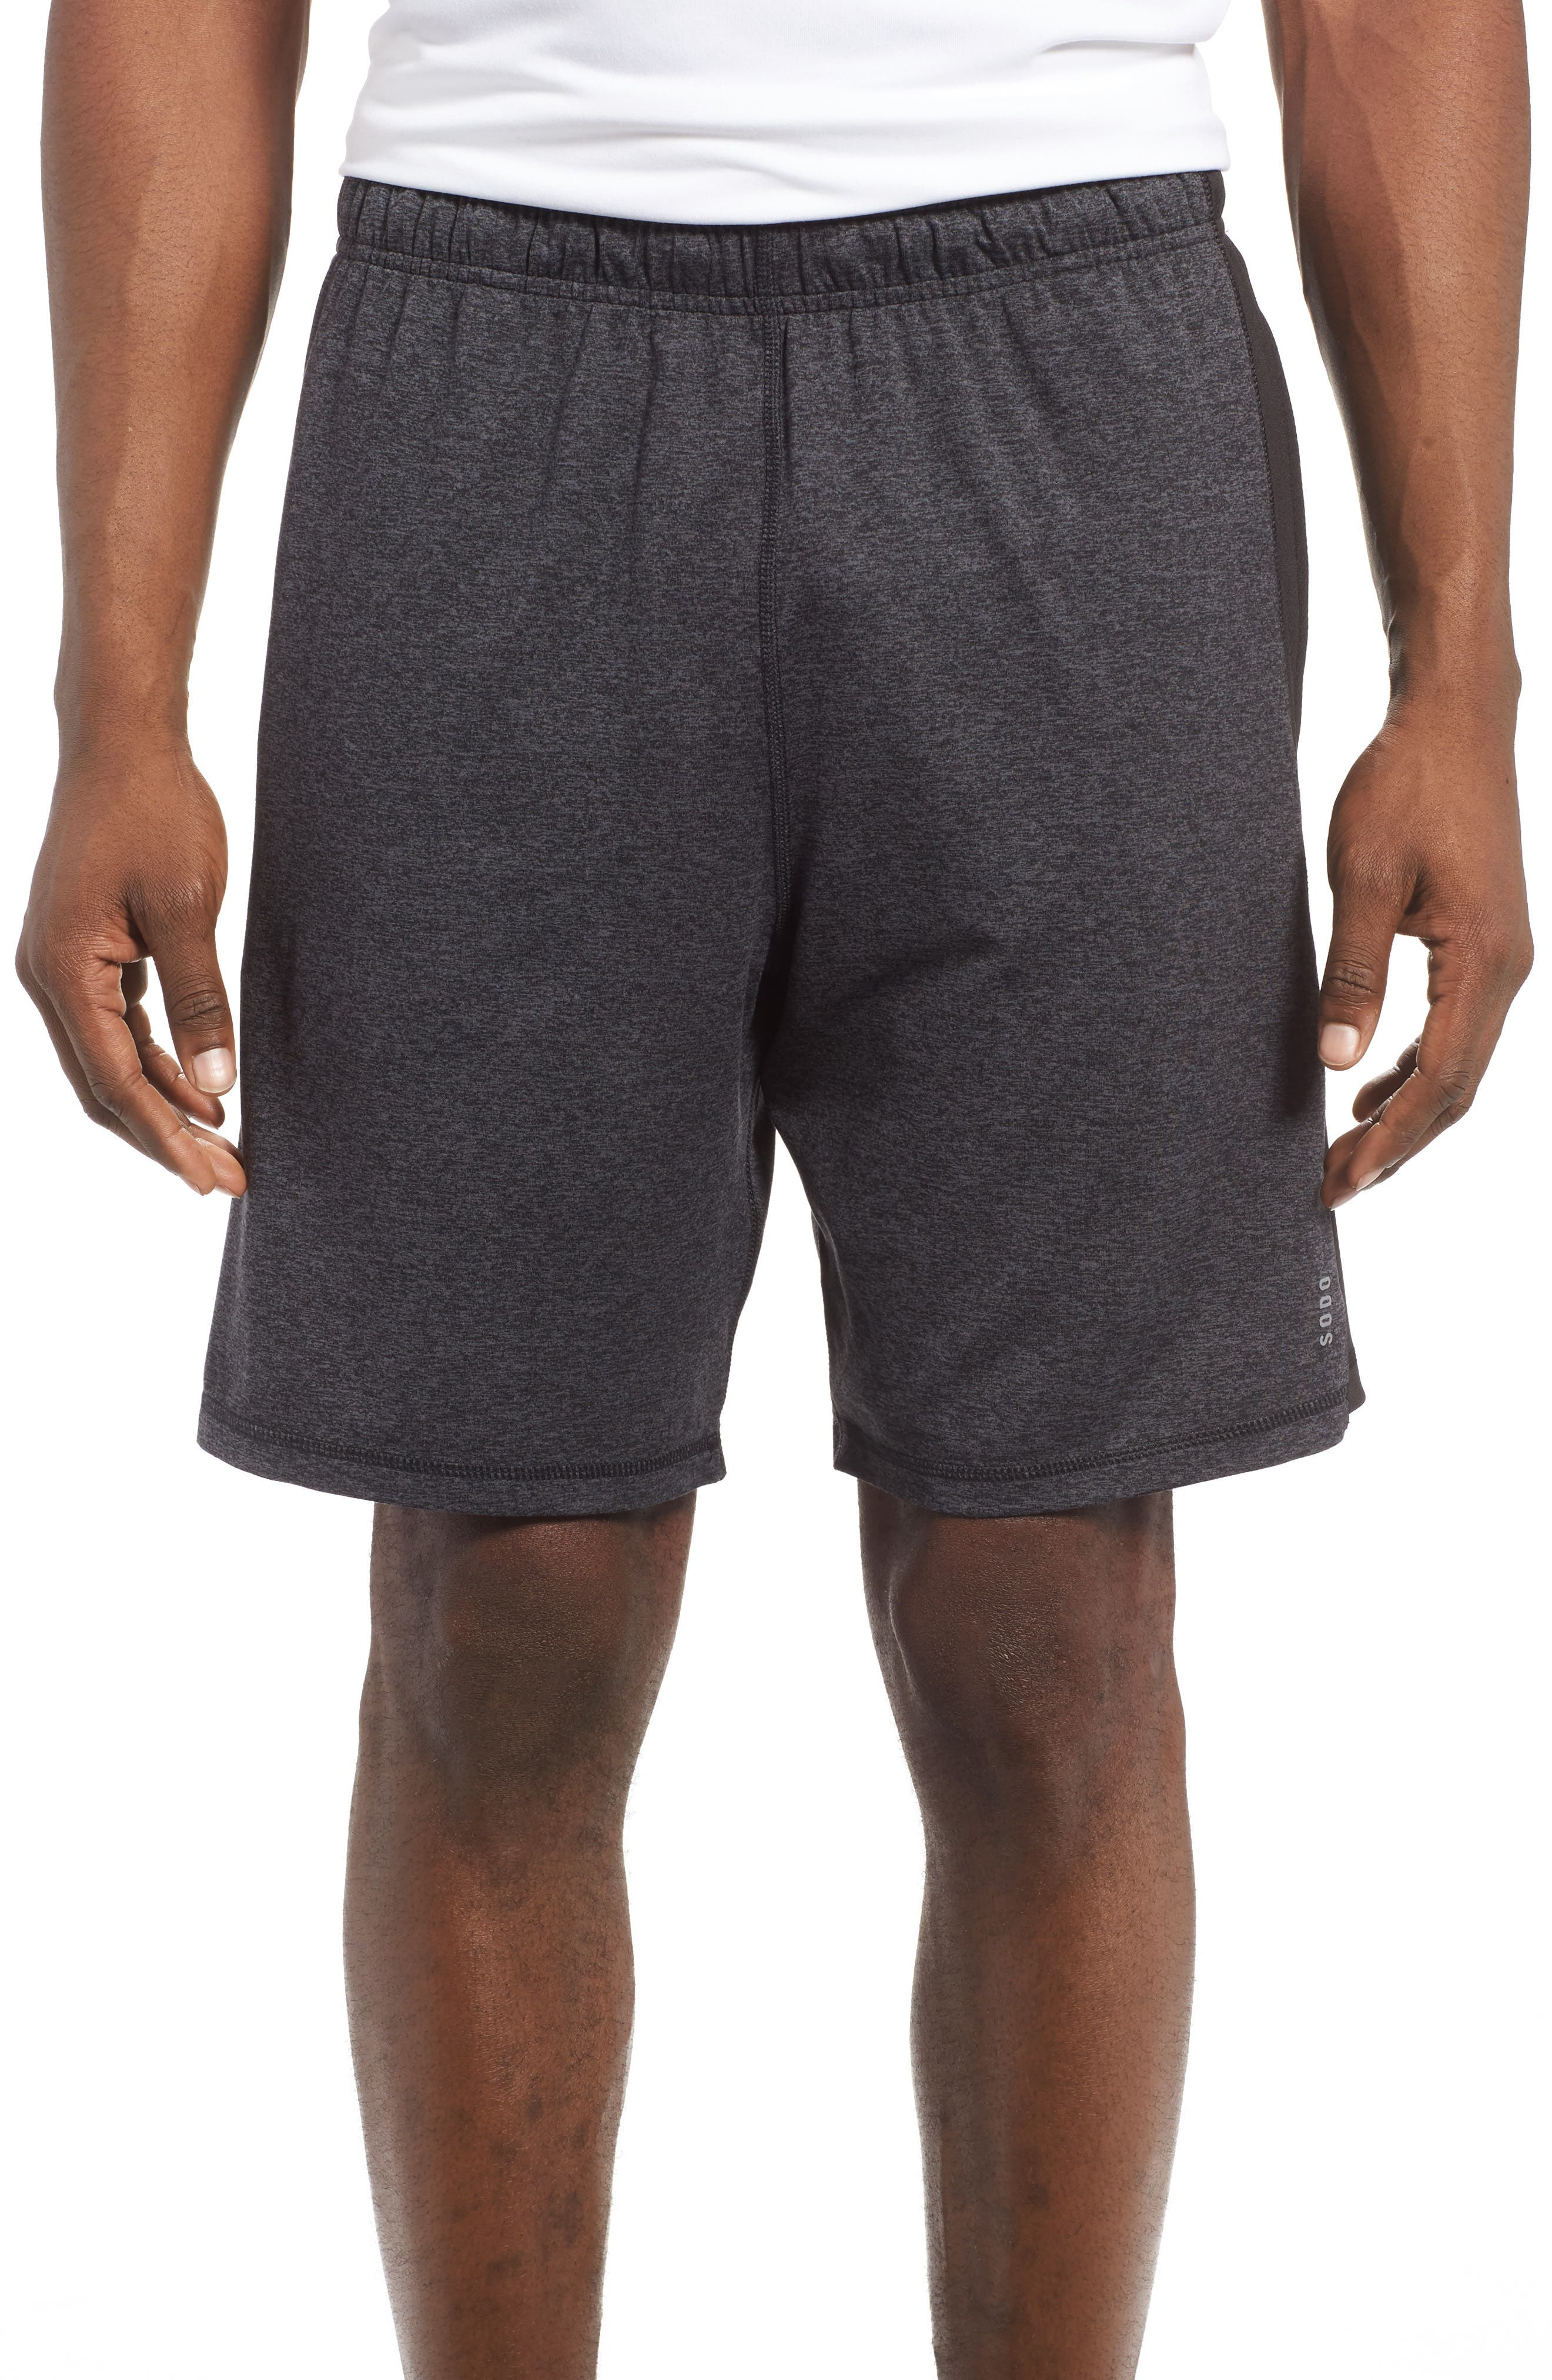 'Go To' Moisture Wicking Stretch Shorts,                         Main,                         color, HEATHER CHARCOAL/ BLACK